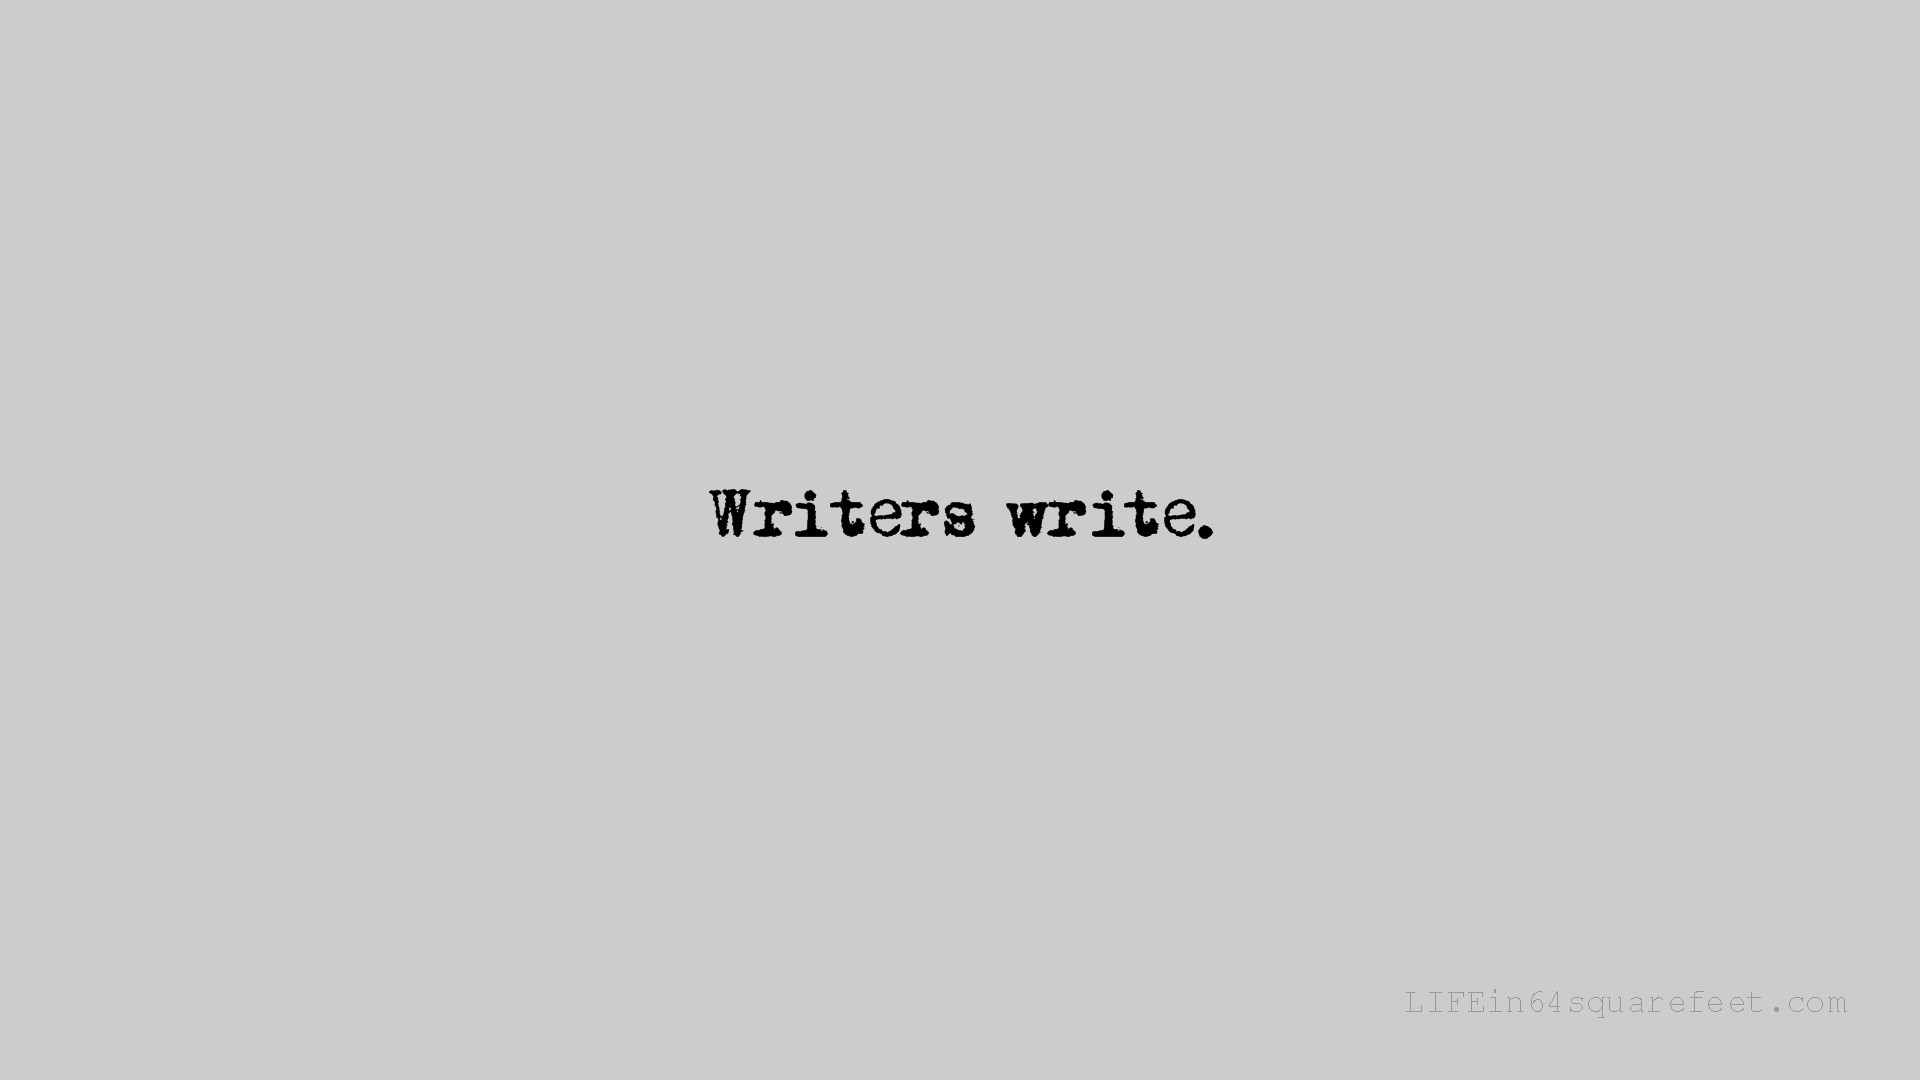 Wallpaper Writing Download Desktop Wallpapers For Writers Lifein64squarefeet